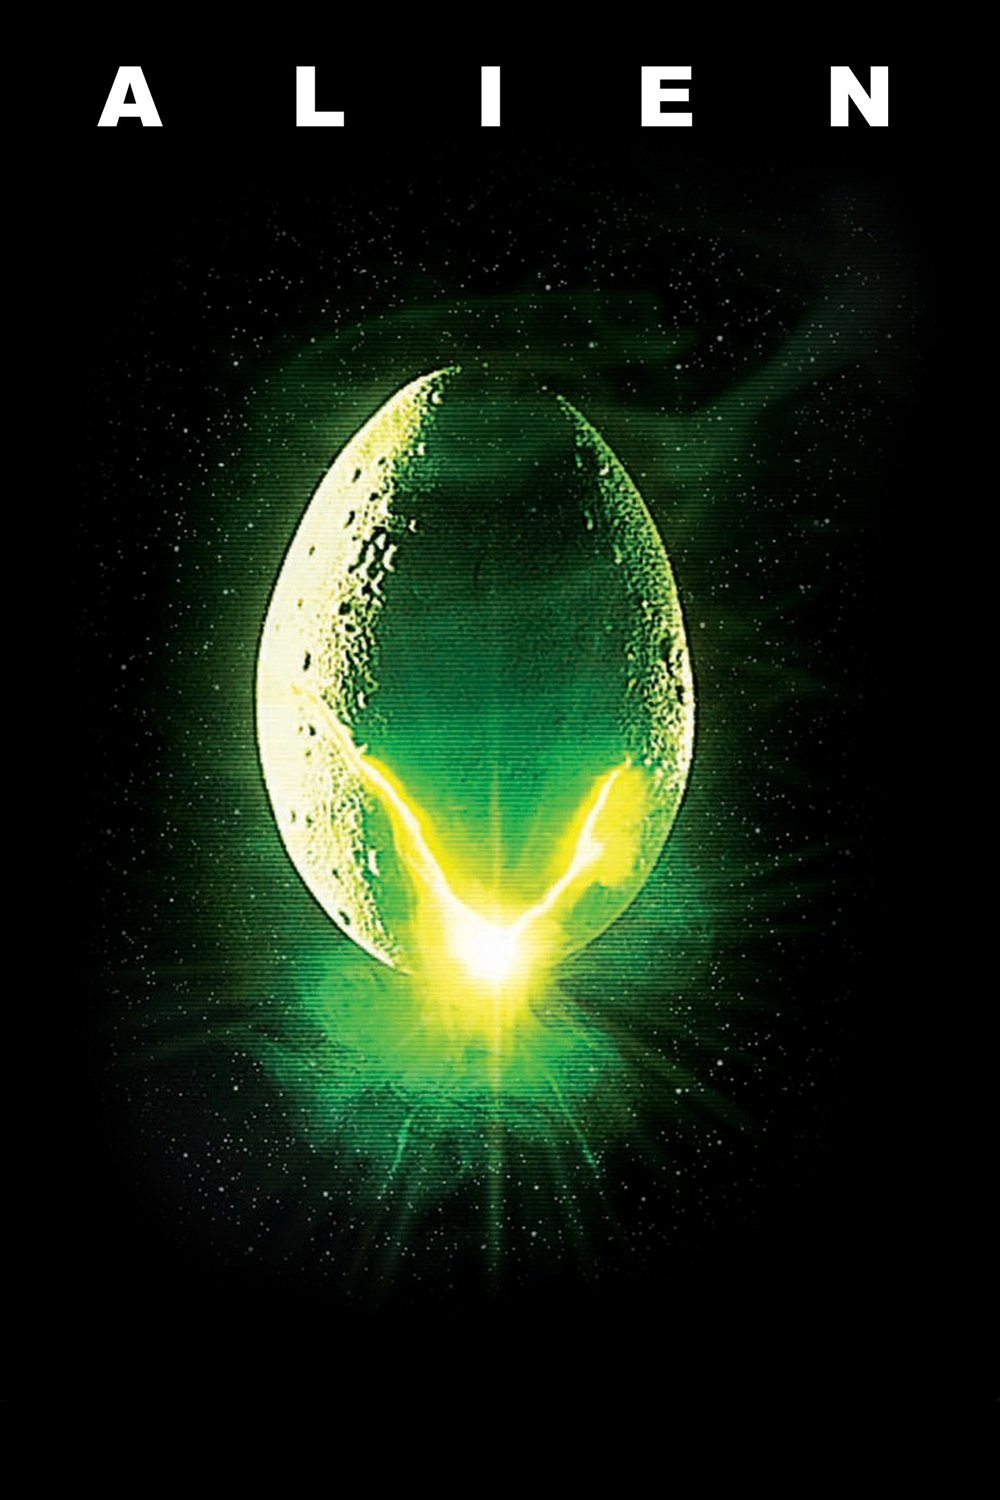 alien movie poster original - photo #12